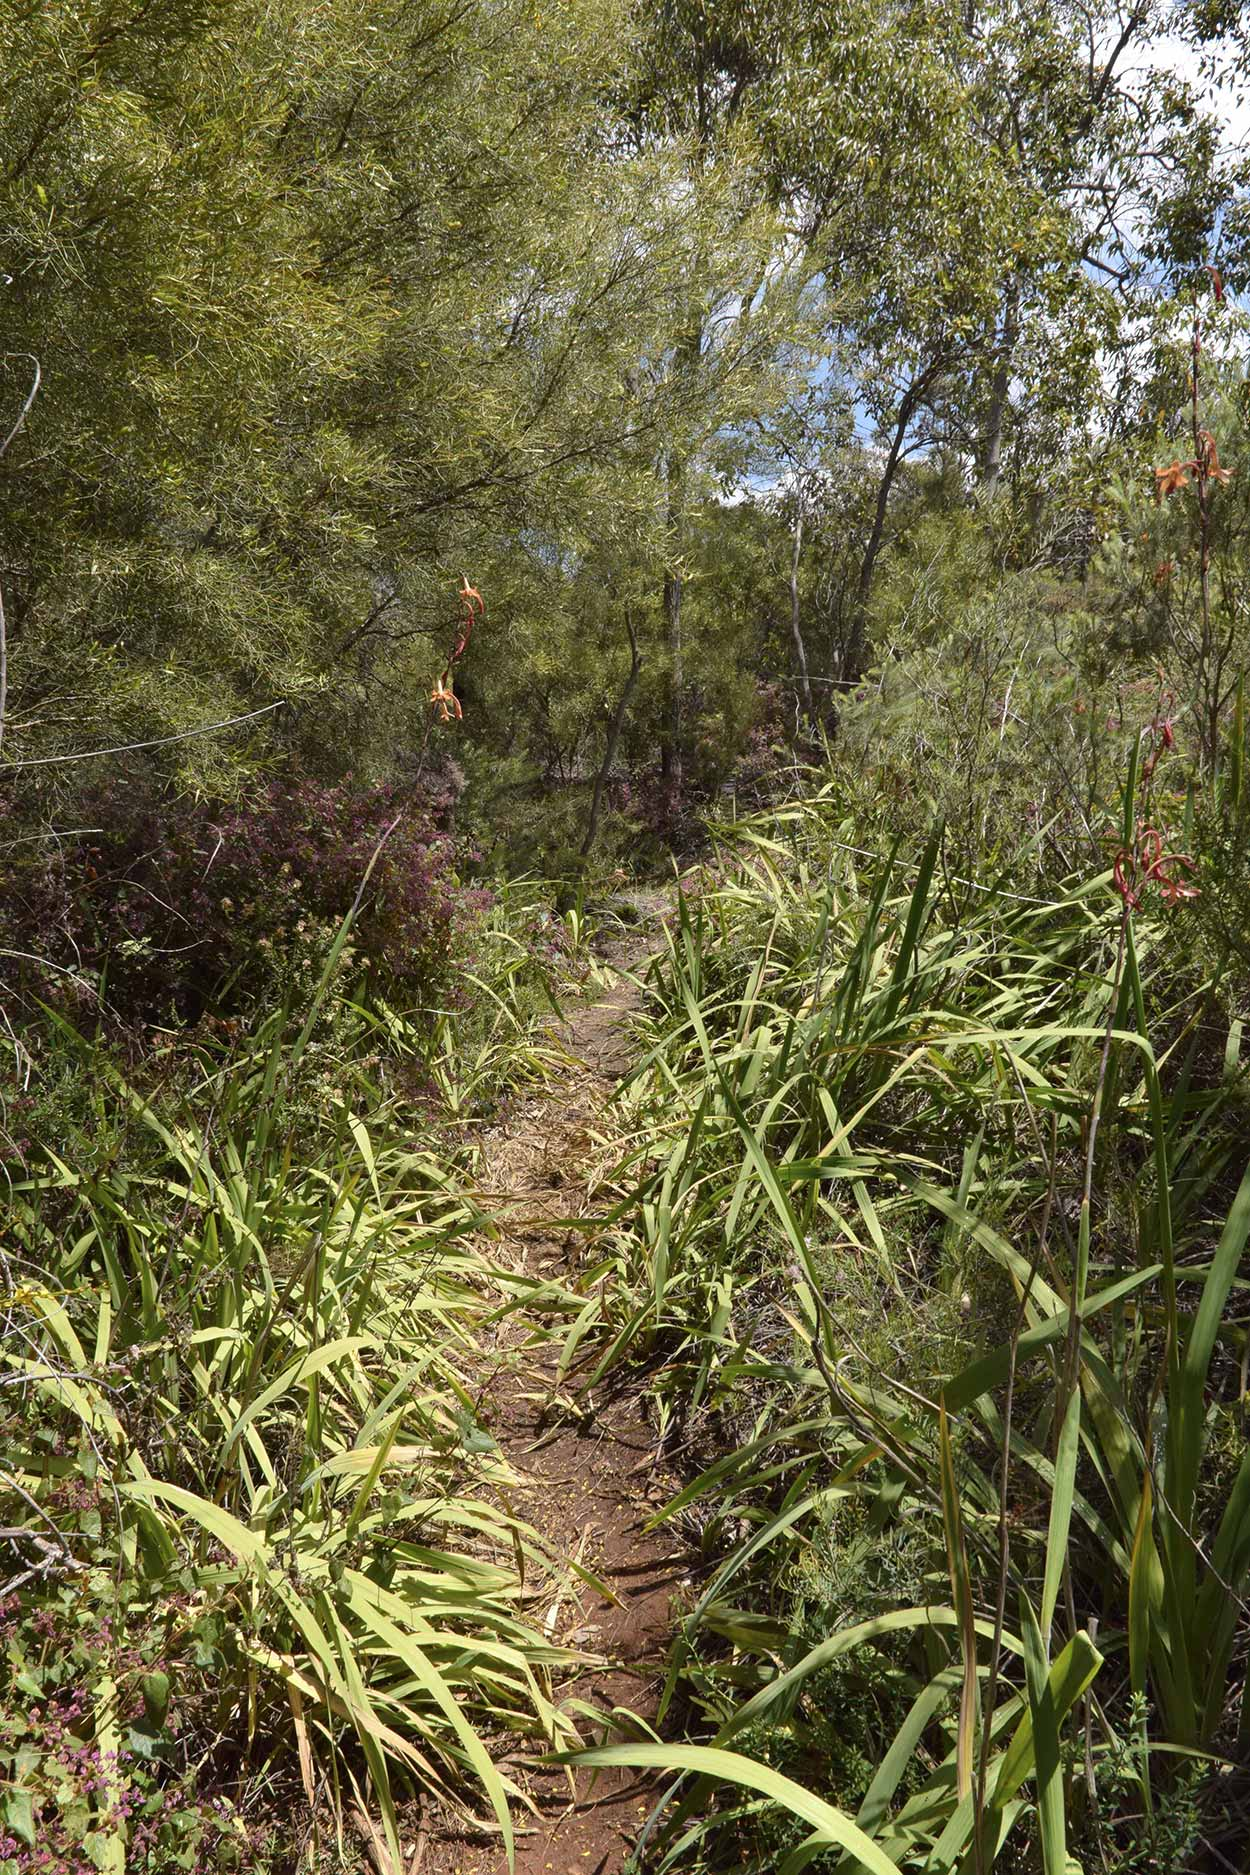 Trail on the north bank of Lesmurdie Brook, Mundy Regional Park, Perth, Western Australia